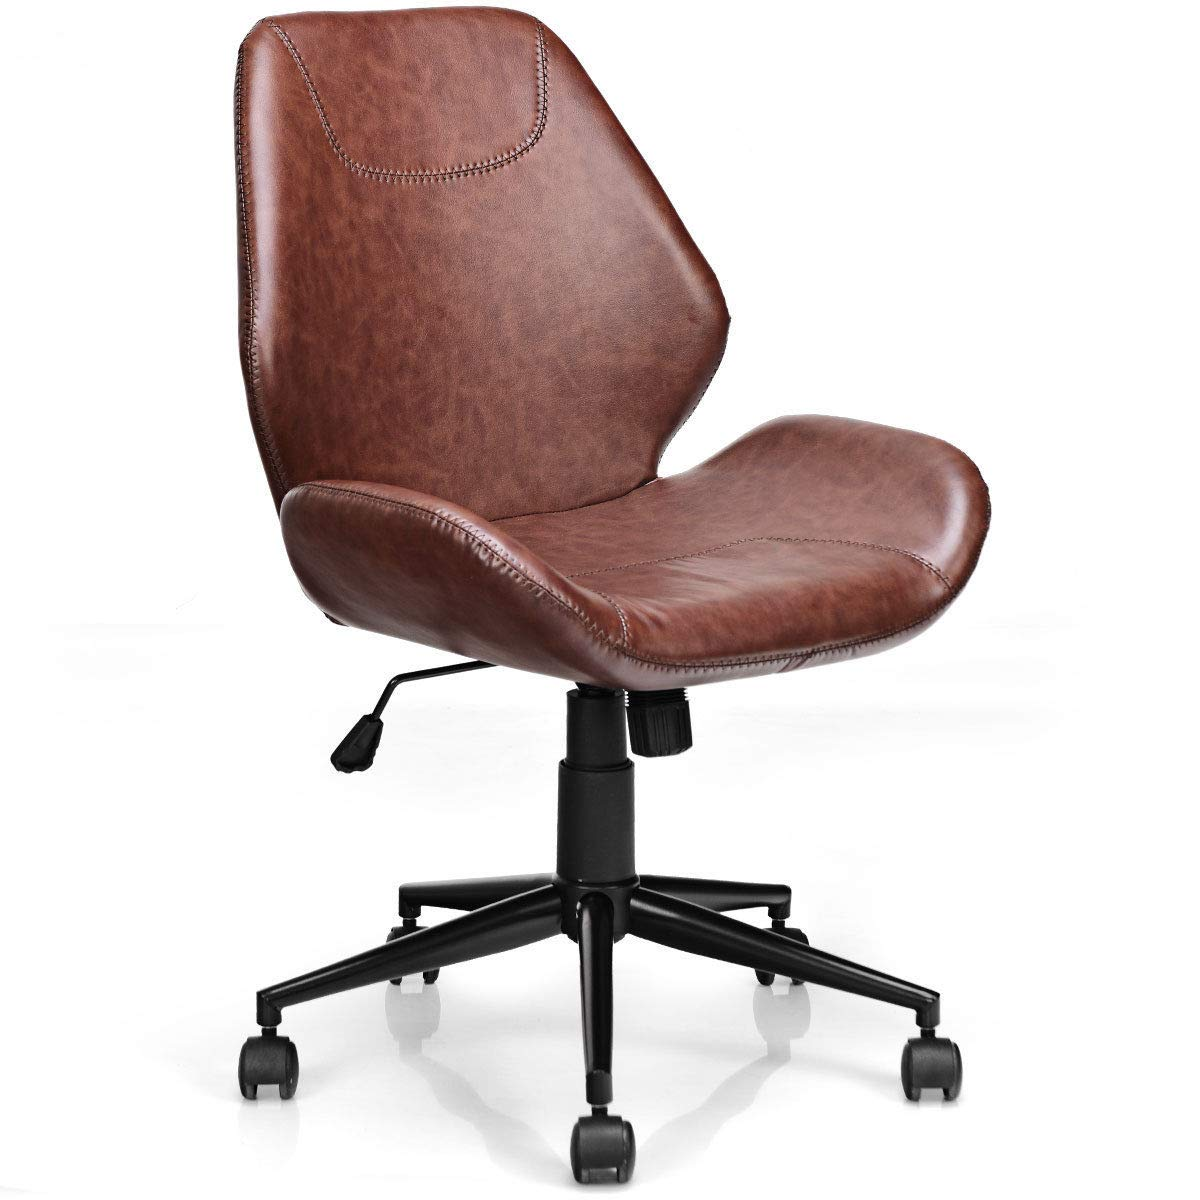 Giantex Home Office Leisure Chair Ergonomic Mid-Back PU Leather Armless Chair Upholstered with 5 Rolling Casters, Height Adjustable Swivel Chair by Giantex